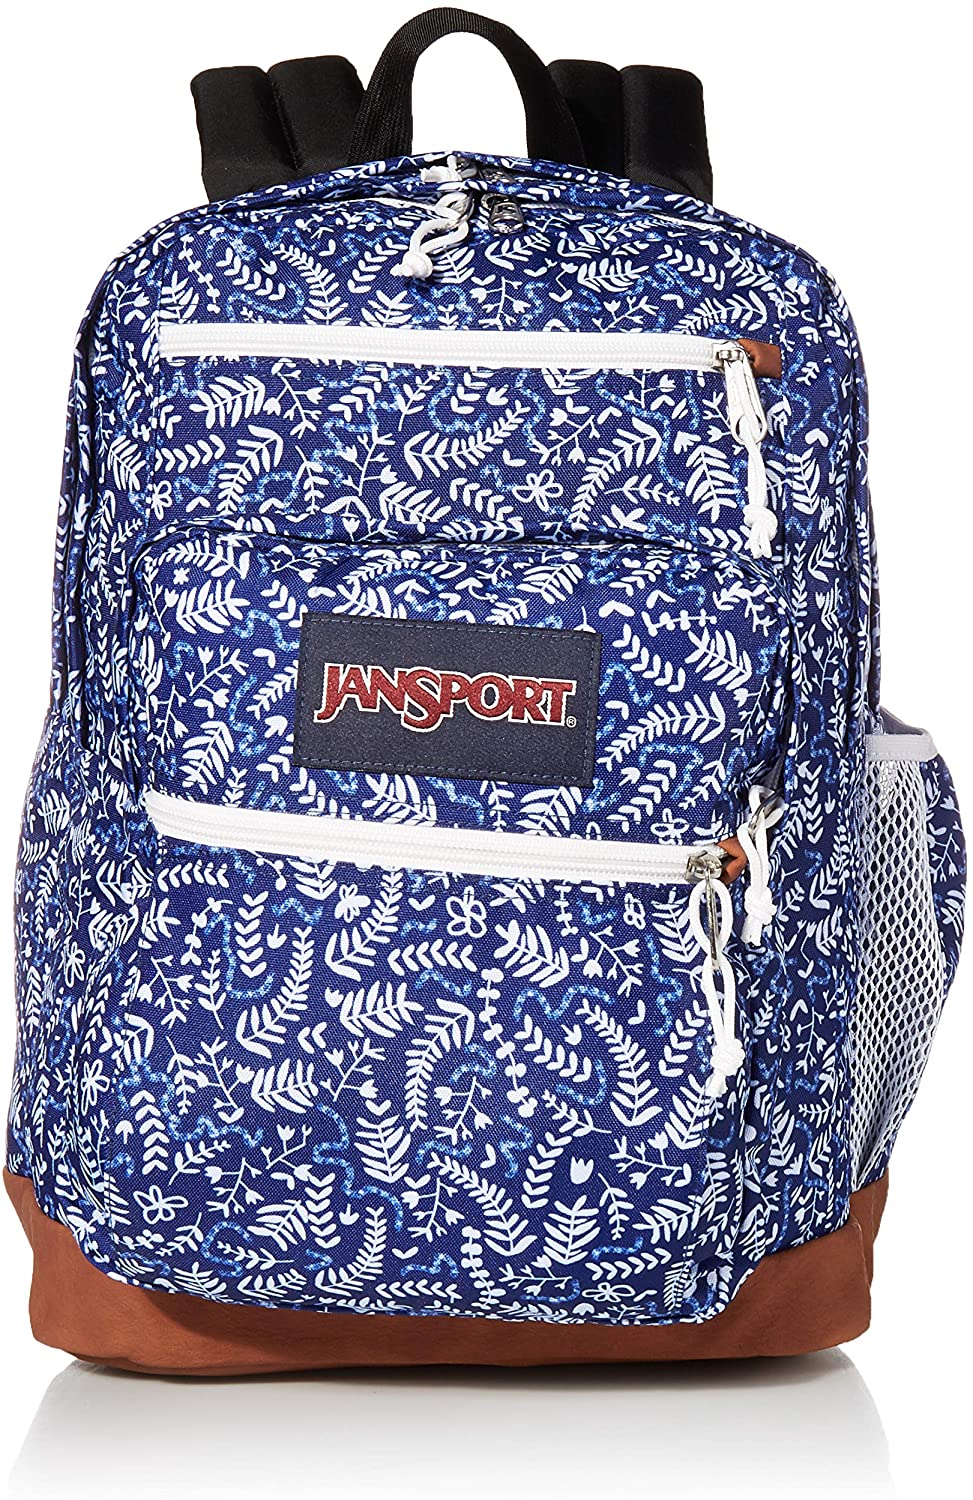 JANSPORT Cool Student Carry-On Luggage